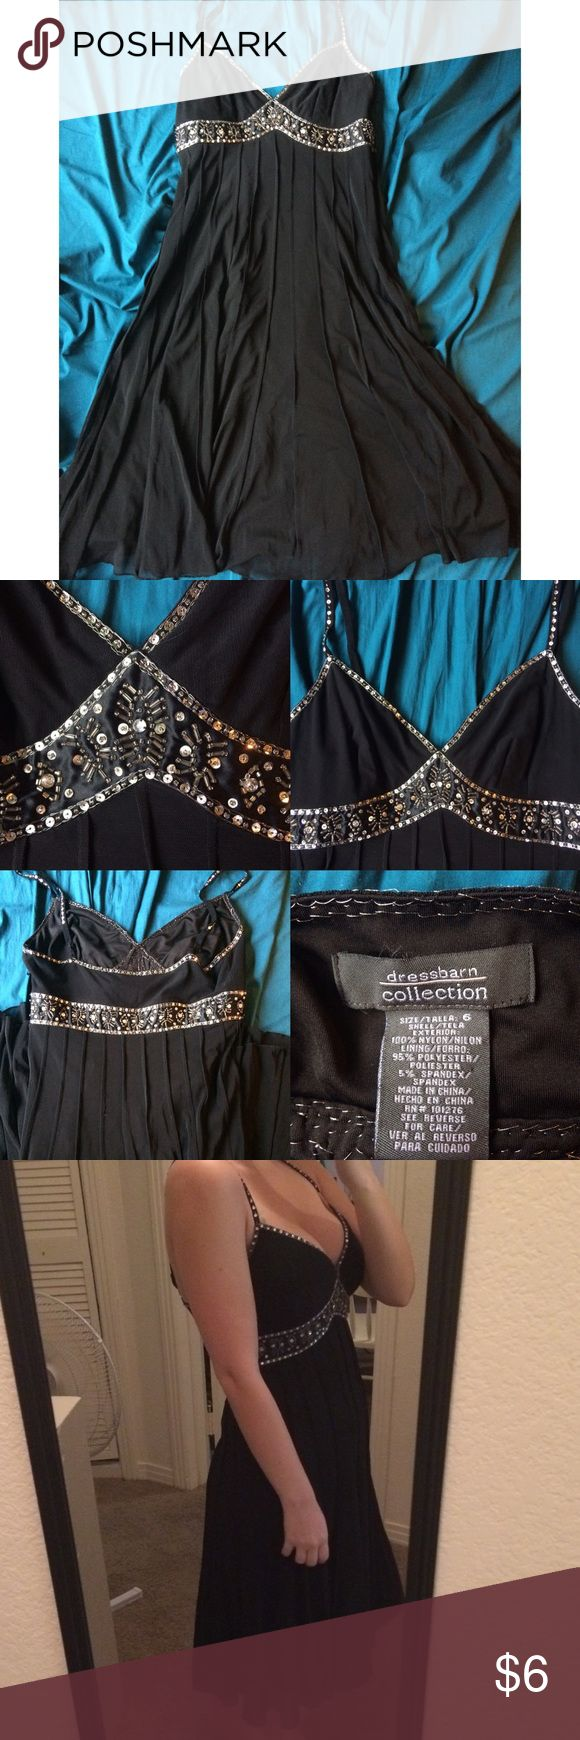 """BLACK FORMAL DRESS GREAT FOR SCHOOL  Adorable dress for a school dance or a wedding!  The top part has beaded details. The inside has a few deodorant """"stains"""". The deodorant fell onto it and got on it but it's really easy to remove! Just take a dryer sheet or an old sock/wash cloth and you're good to go! None of it is visible from the outside I got the majority of it out! I'm  5'6"""" for reference. Great condition.  If you would like any measurements or have any questions just ask! Dress Barn…"""